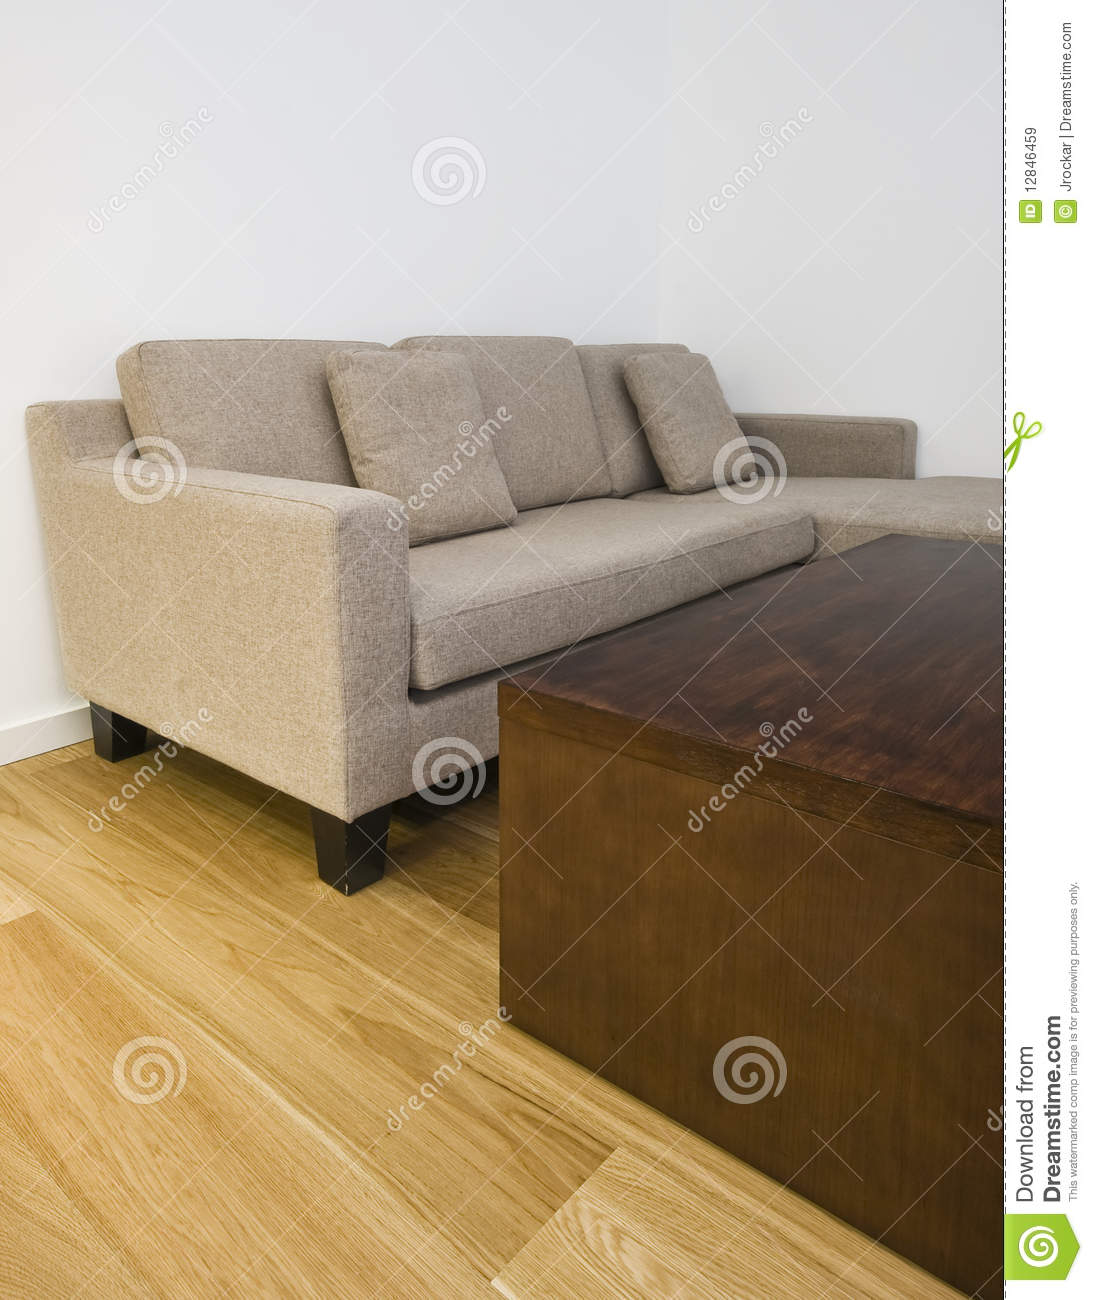 l shape sofa and coffee table stock image image 12846459. Black Bedroom Furniture Sets. Home Design Ideas